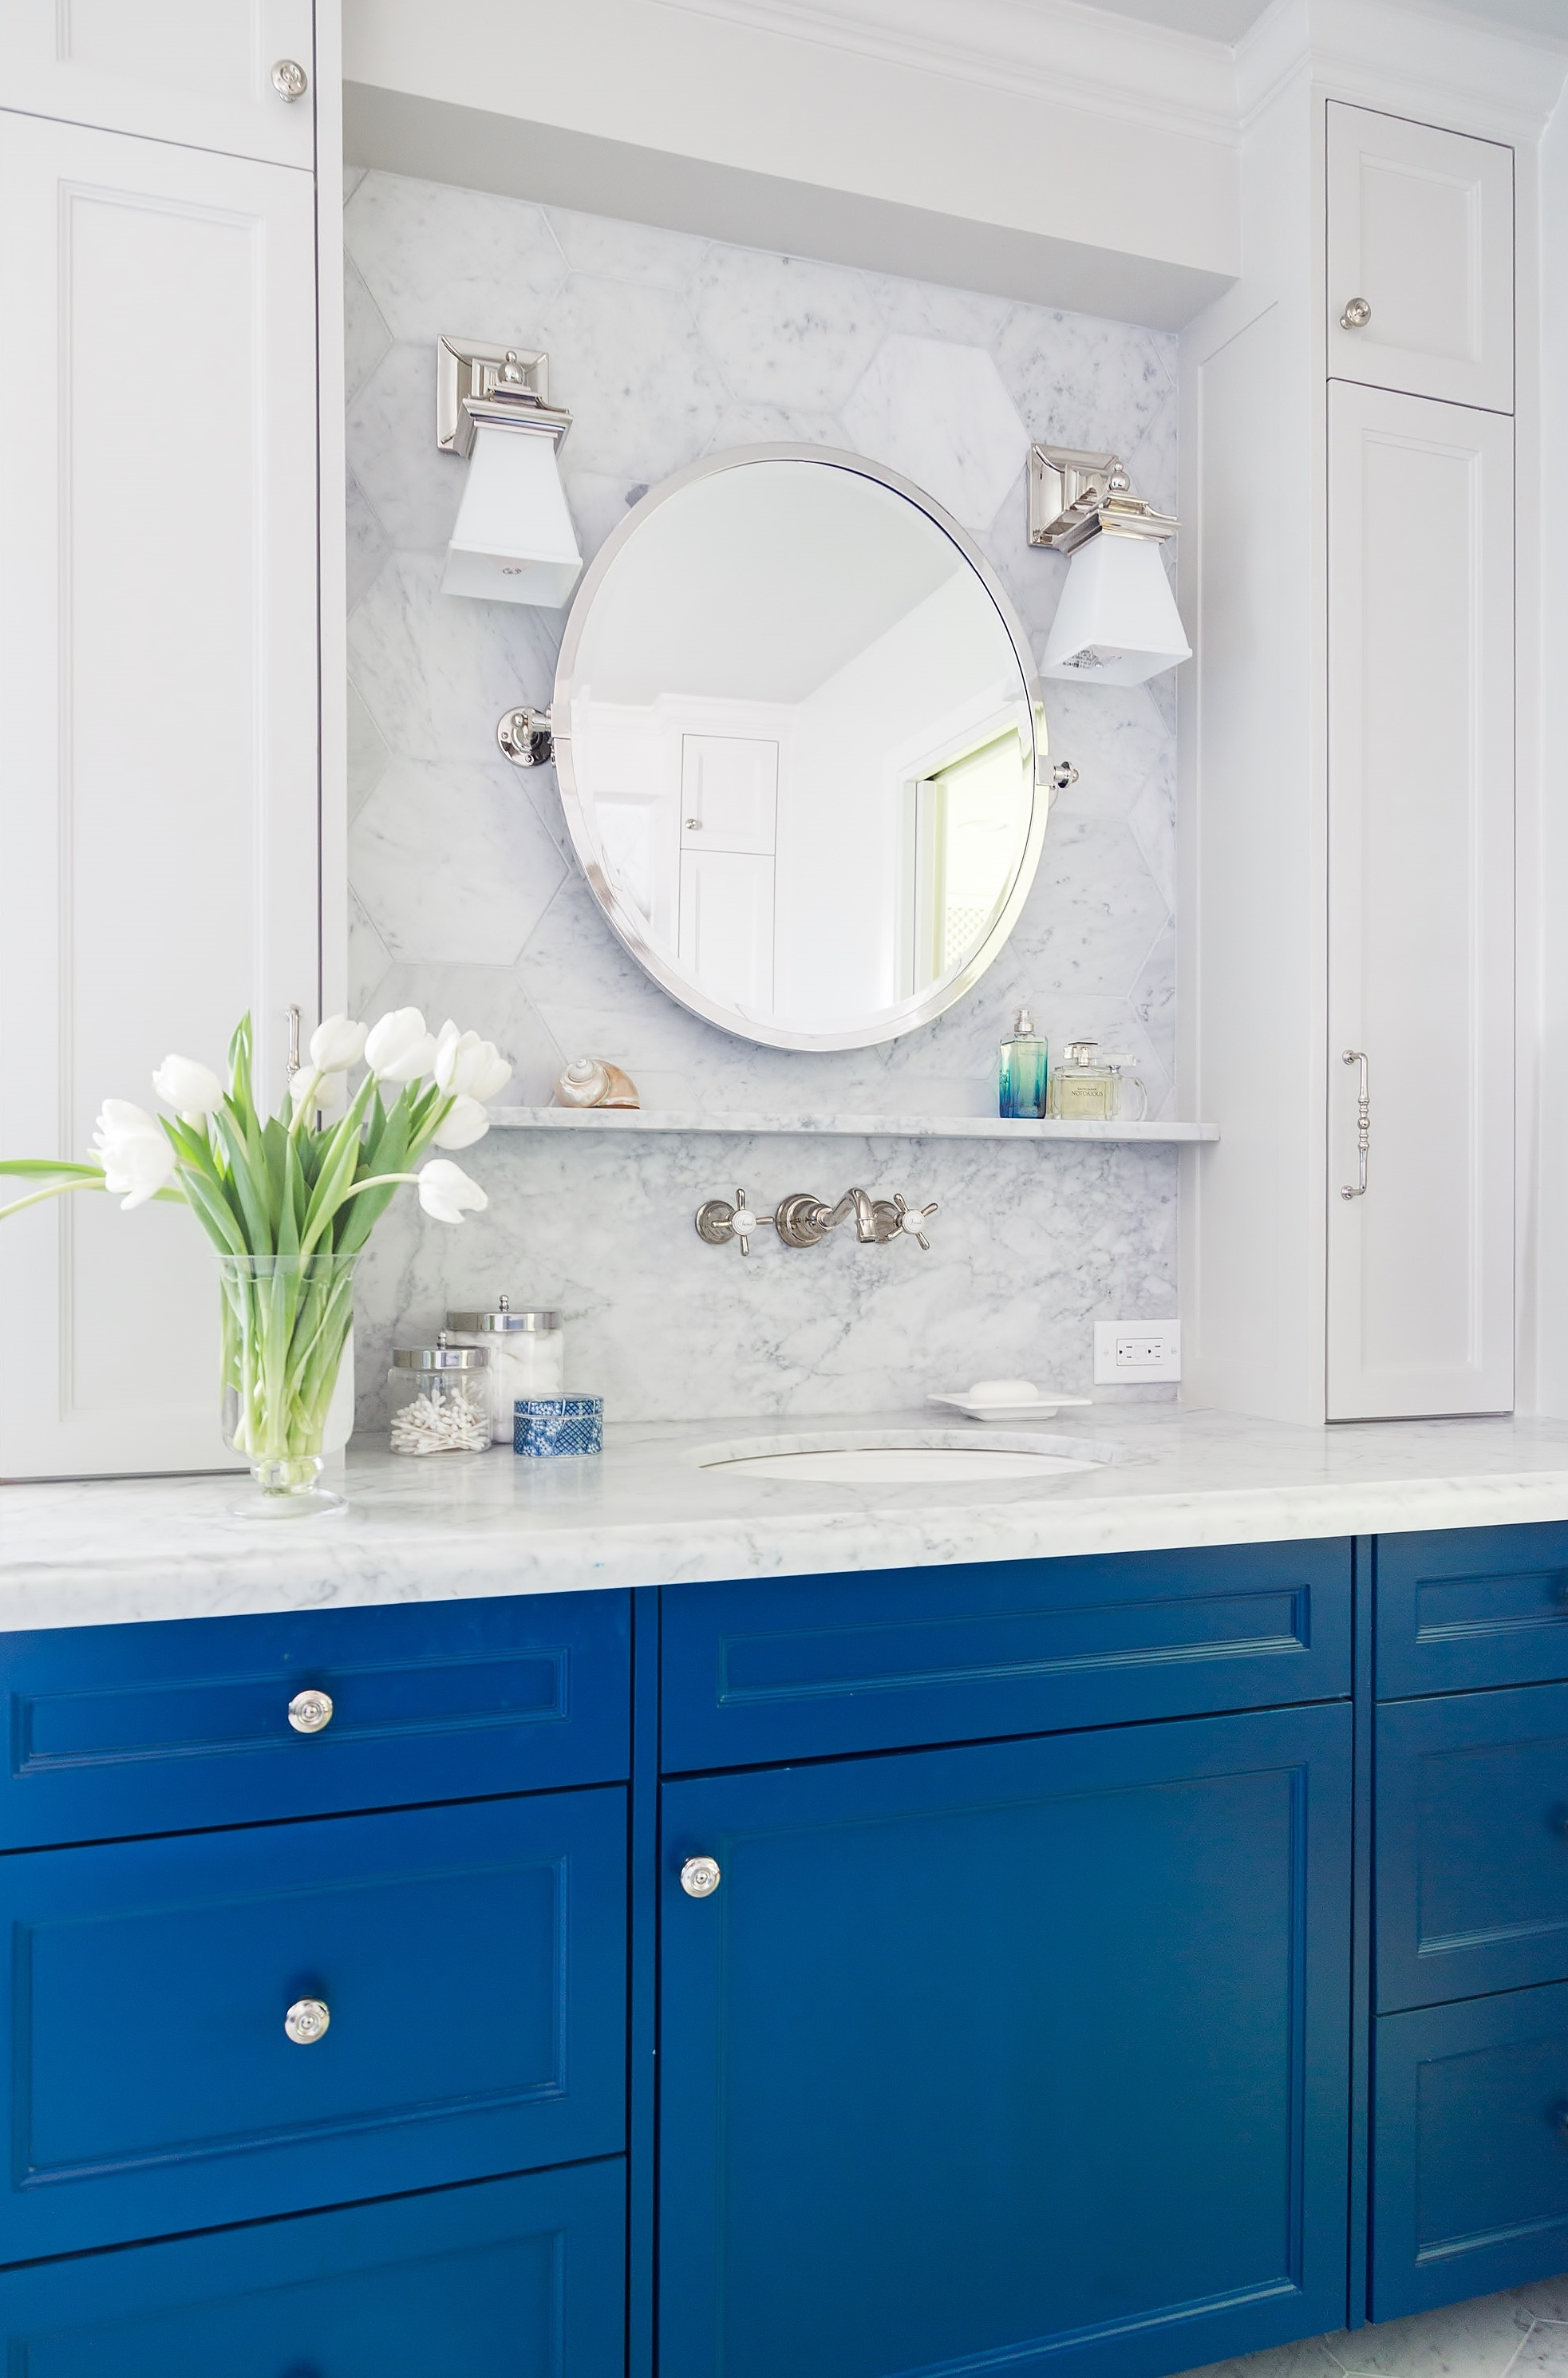 Master bath remodel with white Carrara marble and blue cabinetry, Designer: Carla Aston